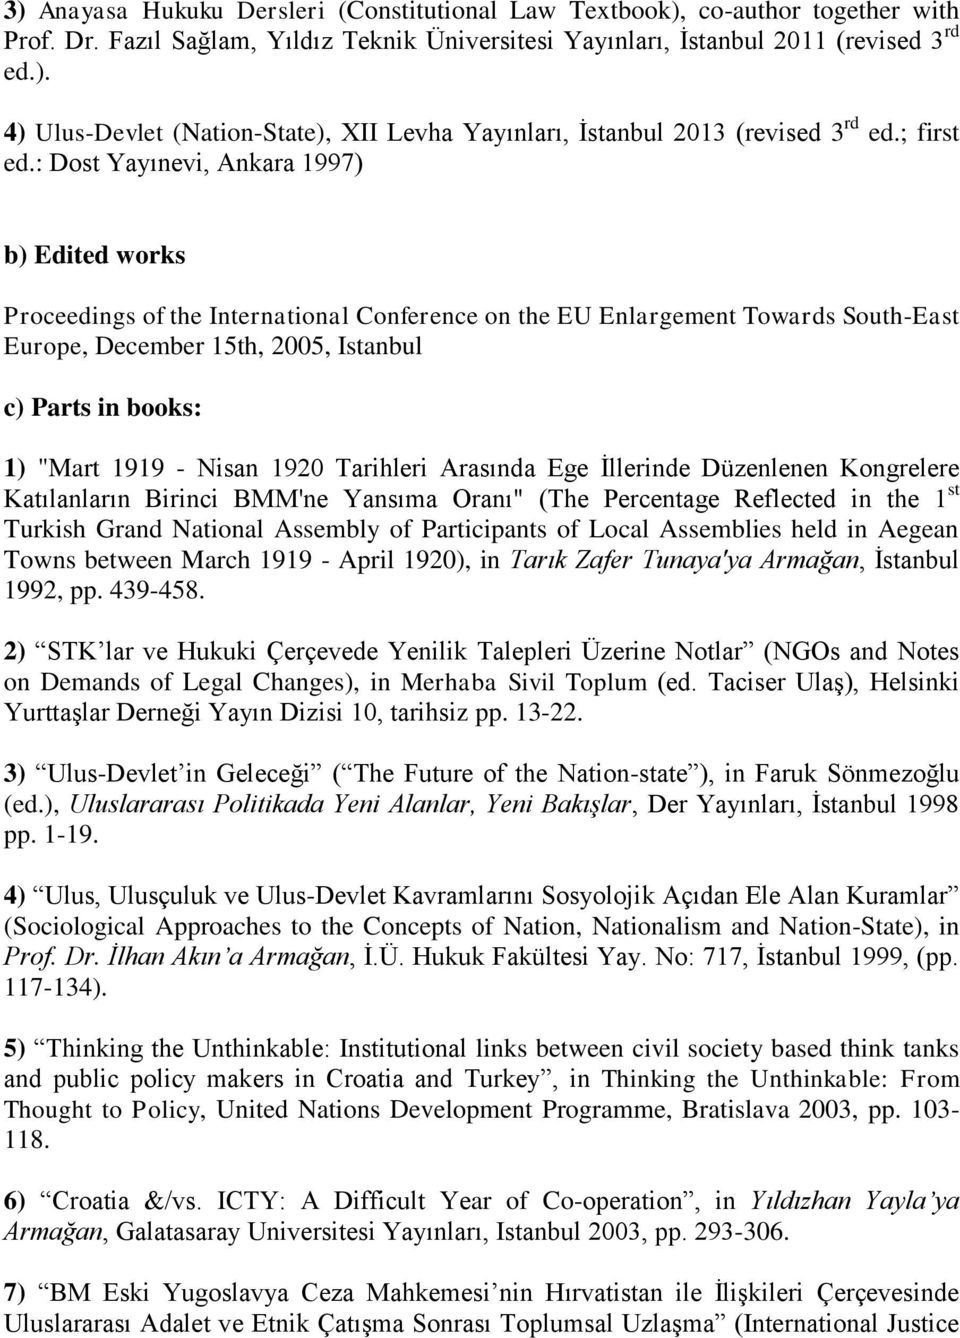 ": Dost Yayınevi, Ankara 1997) b) Edited works Proceedings of the International Conference on the EU Enlargement Towards South-East Europe, December 15th, 2005, Istanbul c) Parts in books: 1) ""Mart"